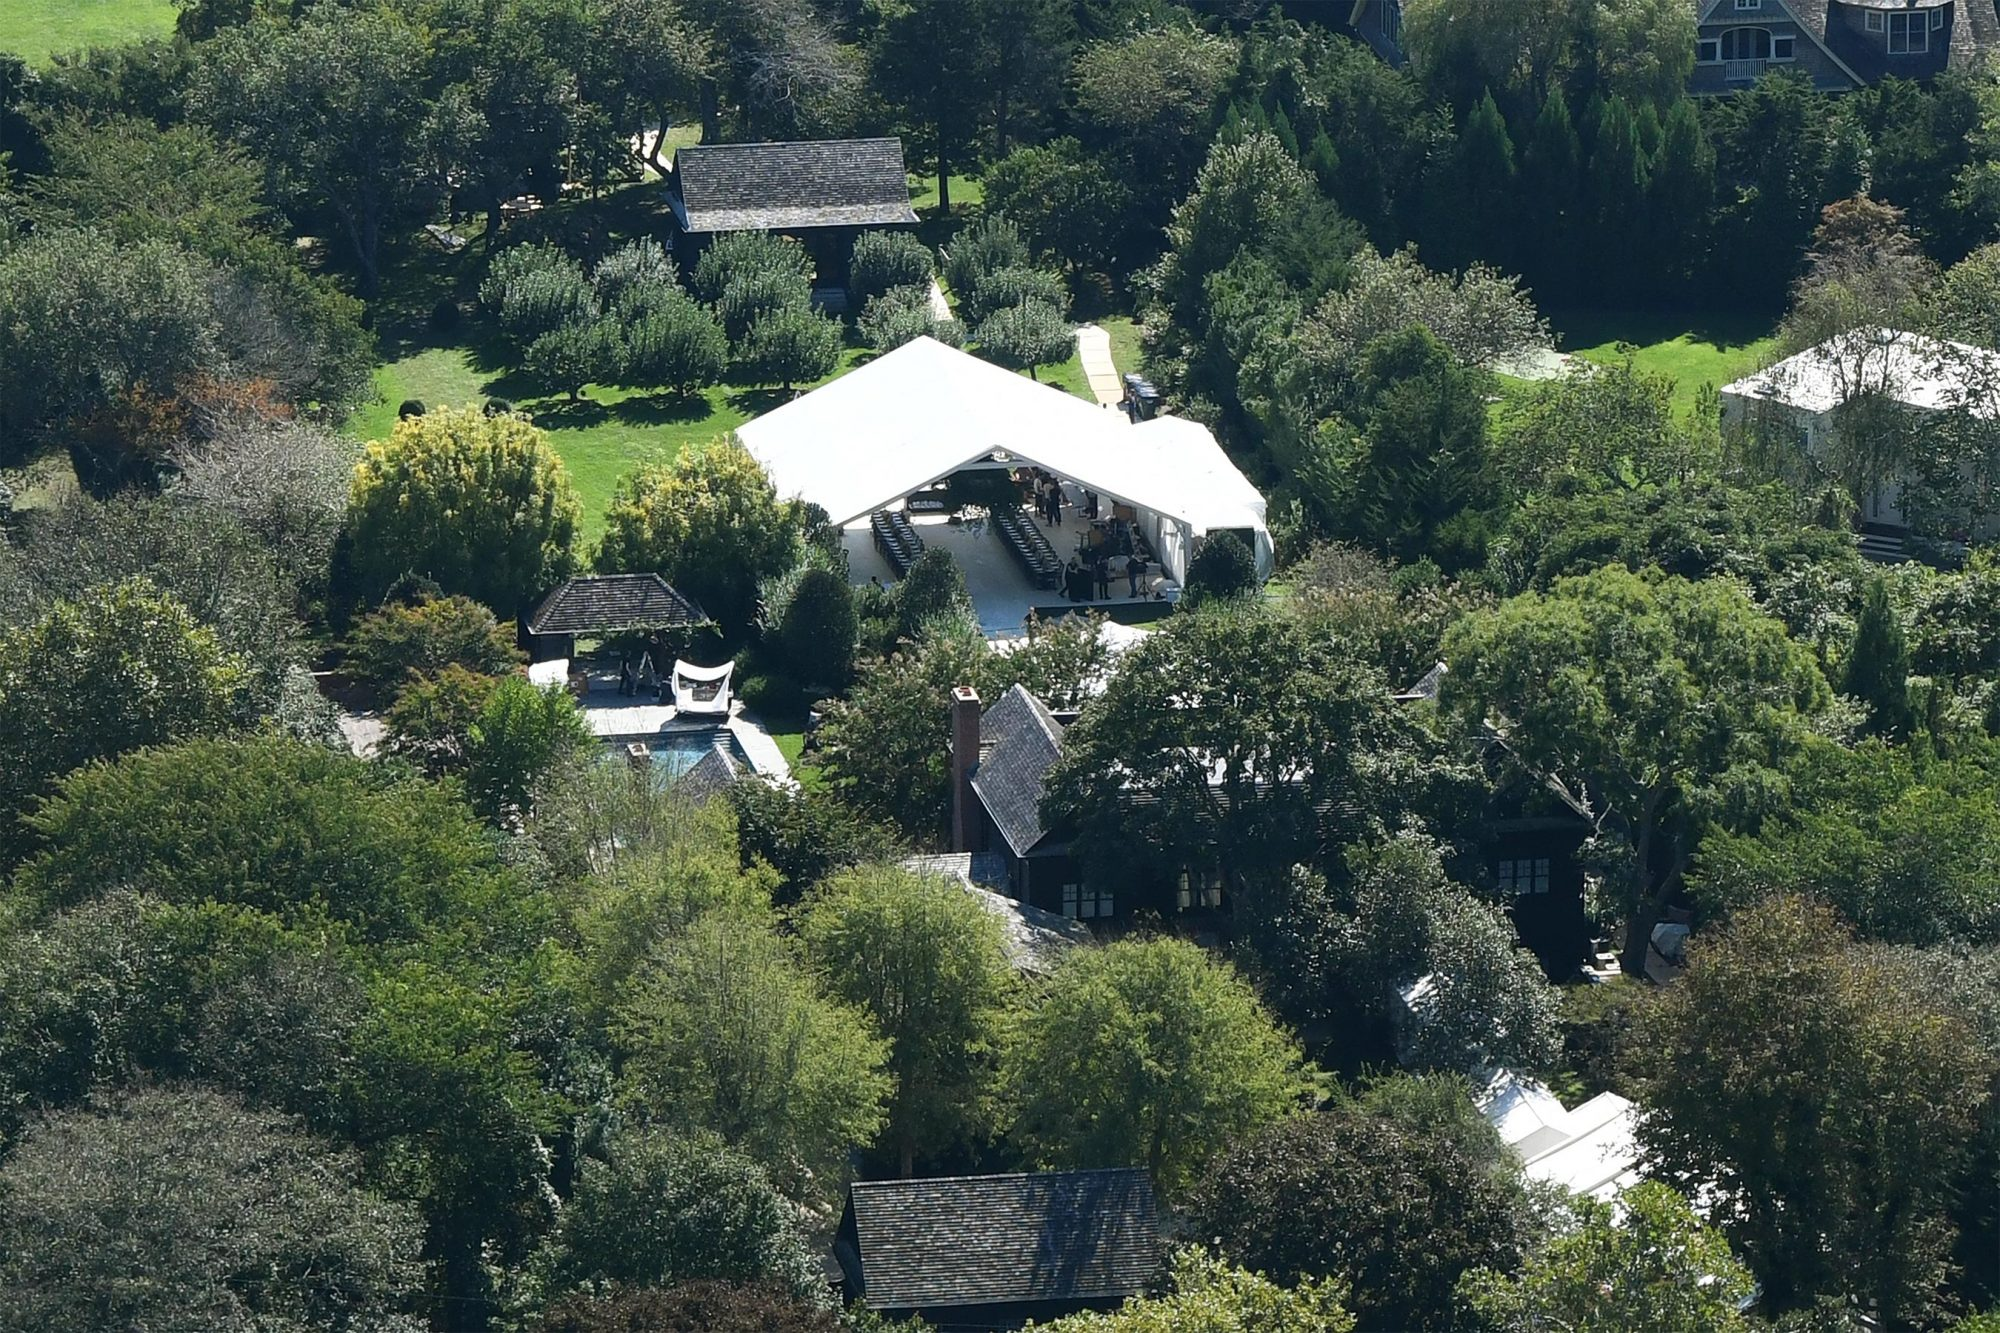 EXCLUSIVE: Gwyneth Paltrow & Brad Falchuk wedding prep GV's in the garden of Gwyneth's Hampton's home, just a few hours before the couple get married.